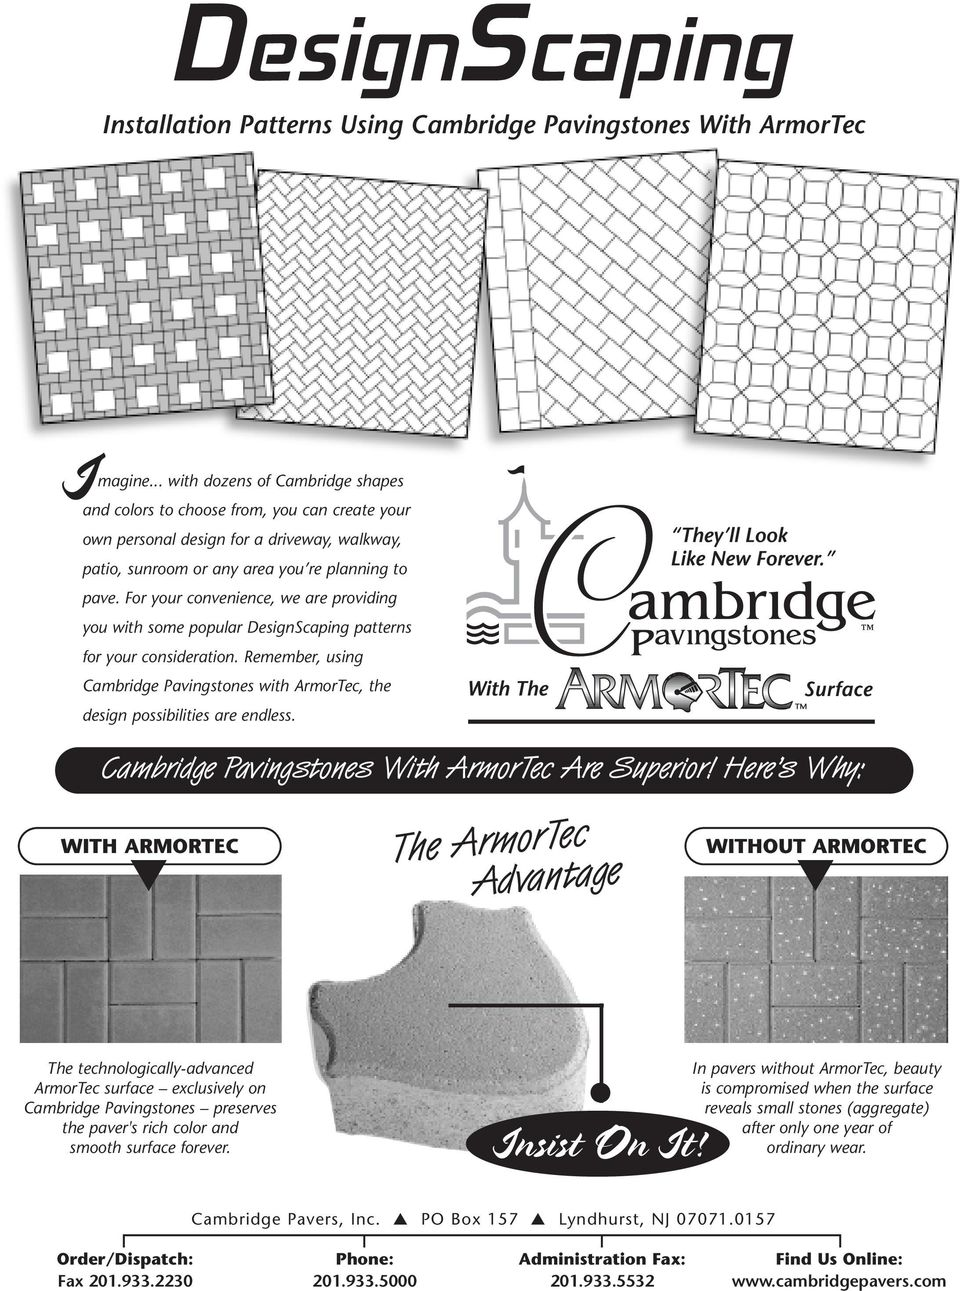 Installation Patterns Using Cambridge Pavingstones With ArmorTec